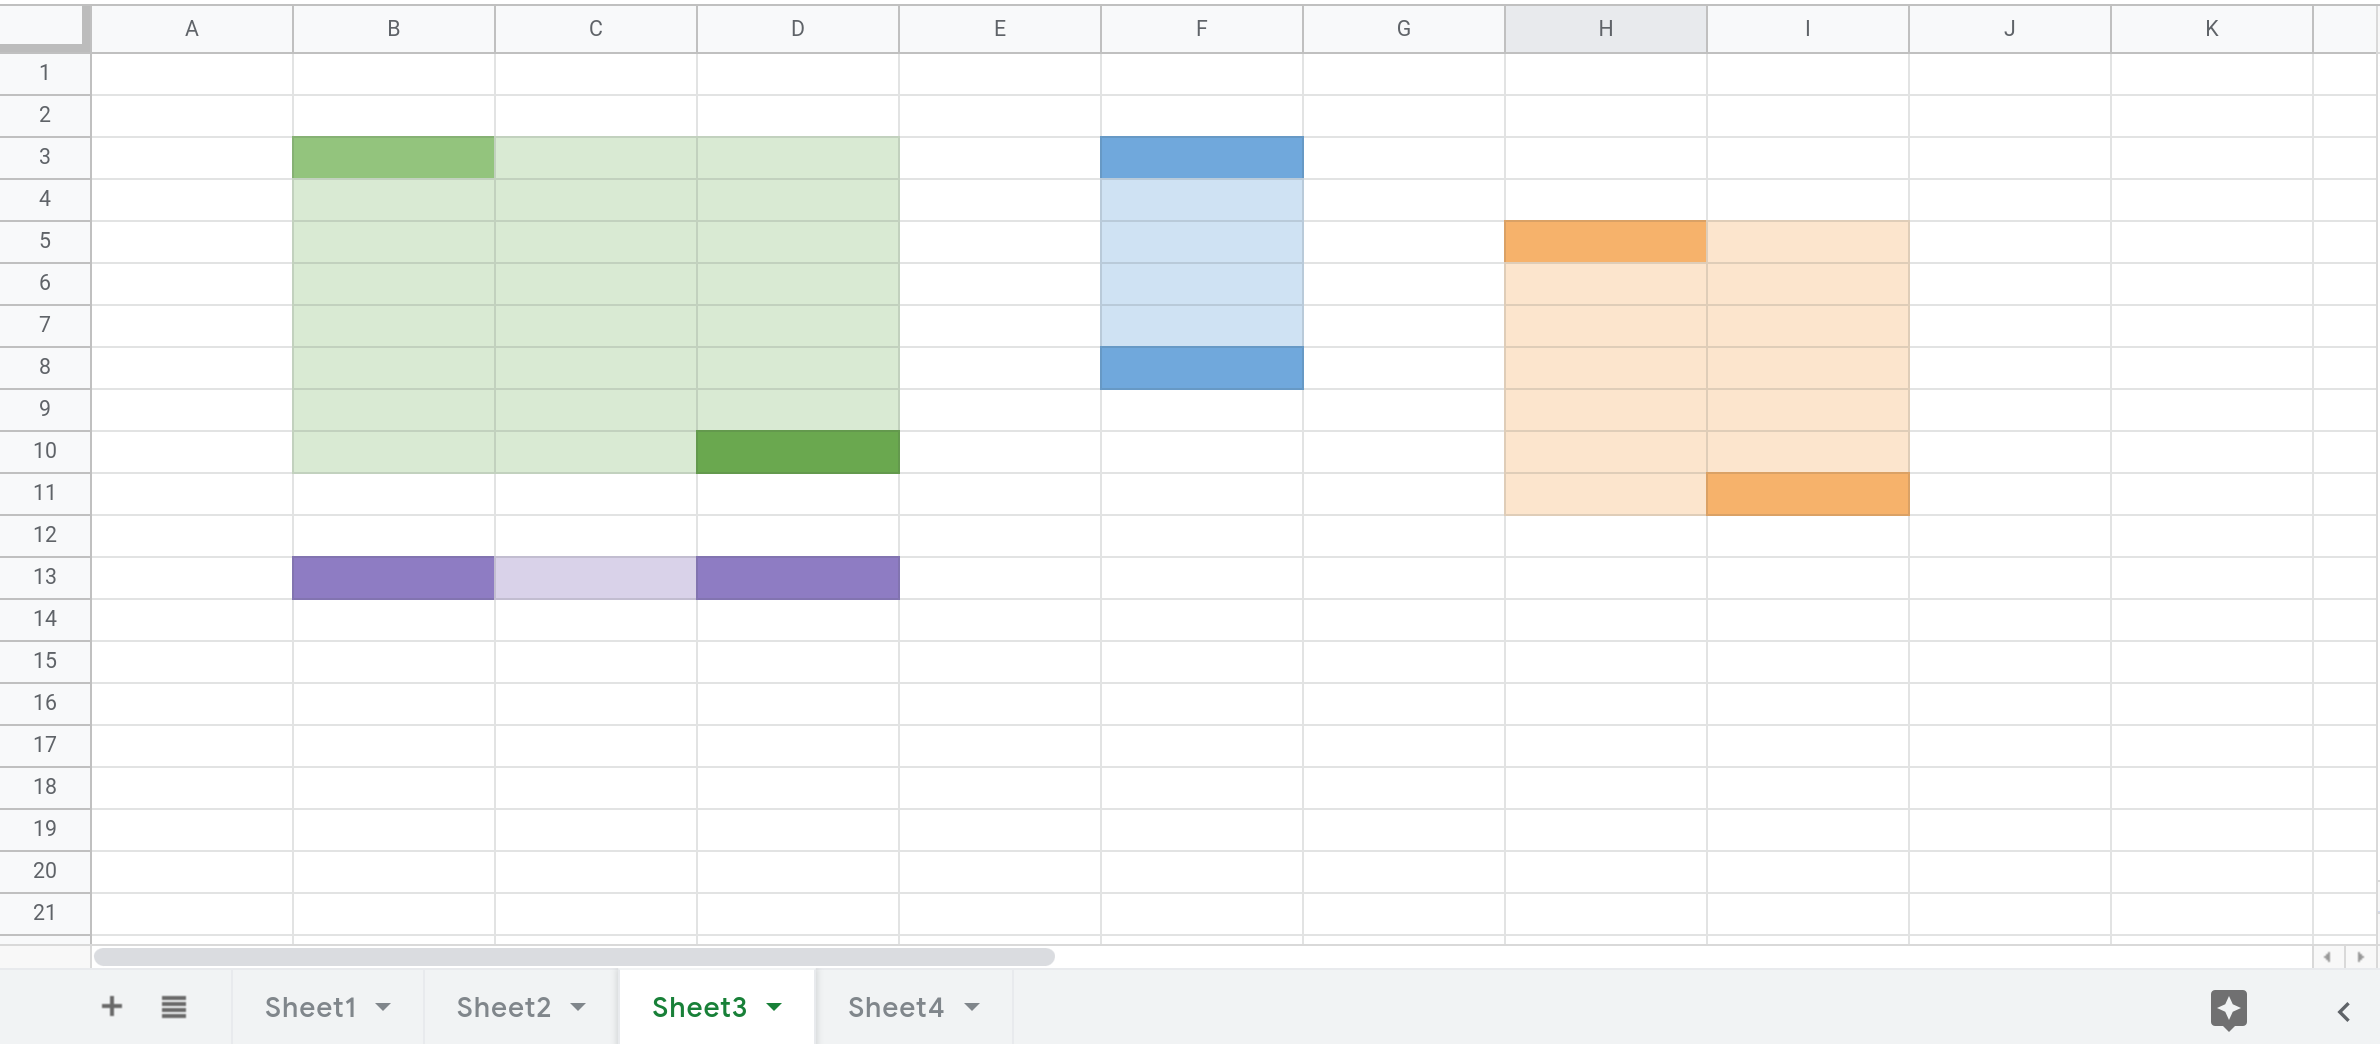 Screenshot of a Google Sheets spreadsheet that shows 4 ranges highlighted in Sheet3. The cells at the top left and bottom right corner of each range are filled with a darker color.